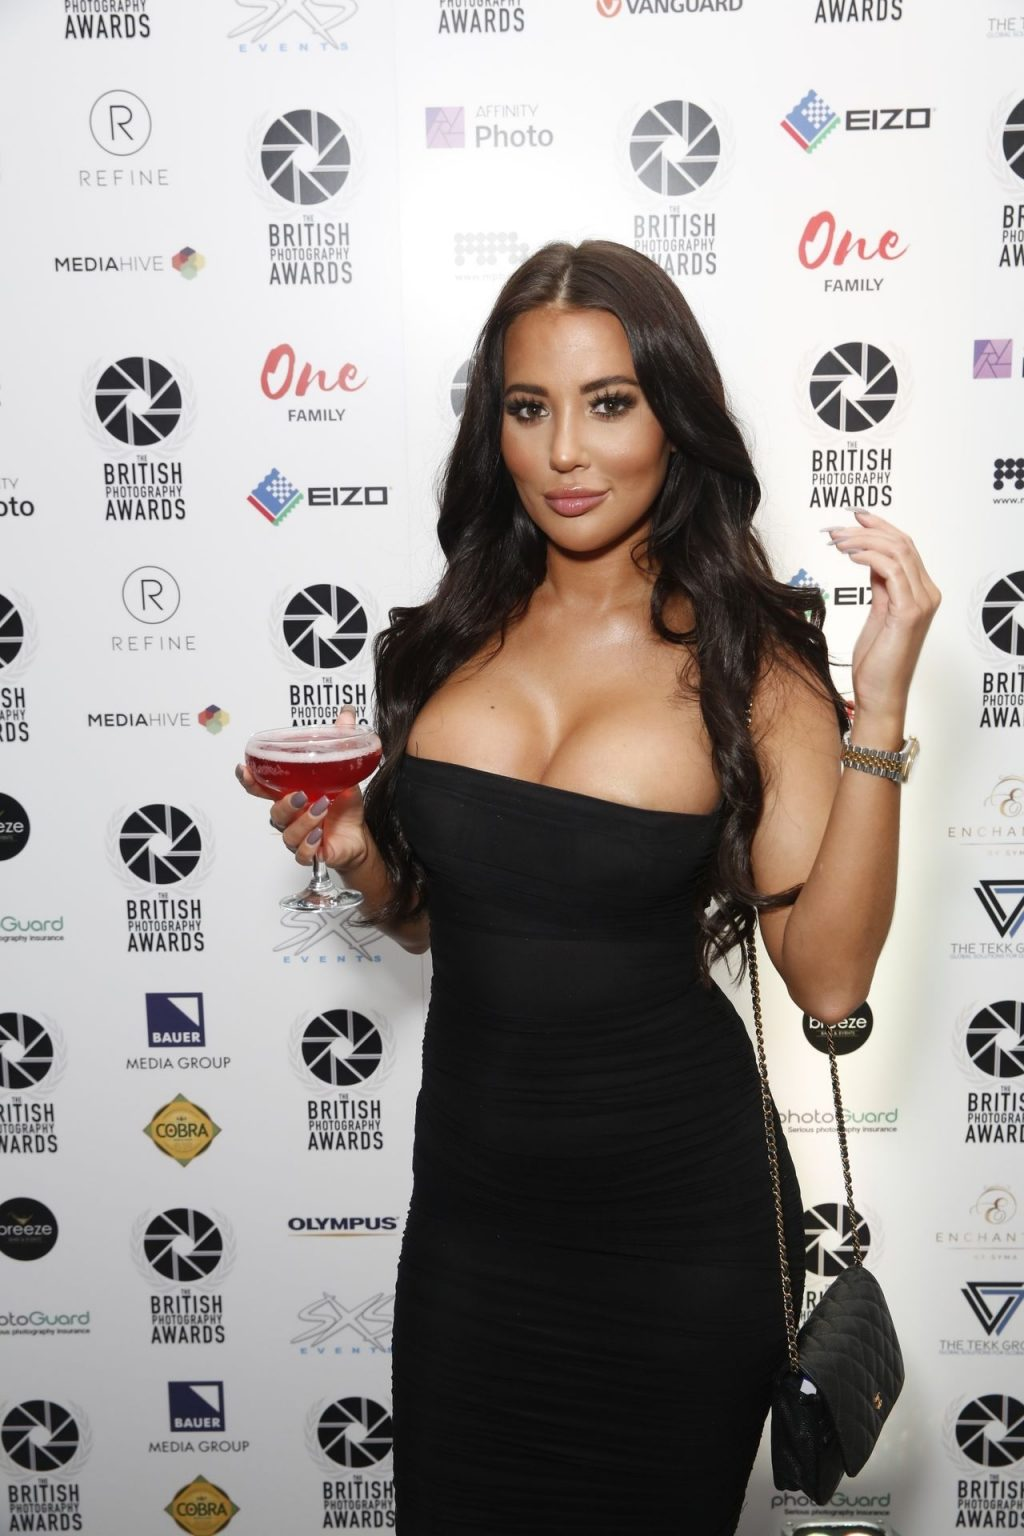 Yazmin Oukhellou Shows Her Boobs at the British Photography Awards (29 Photos)